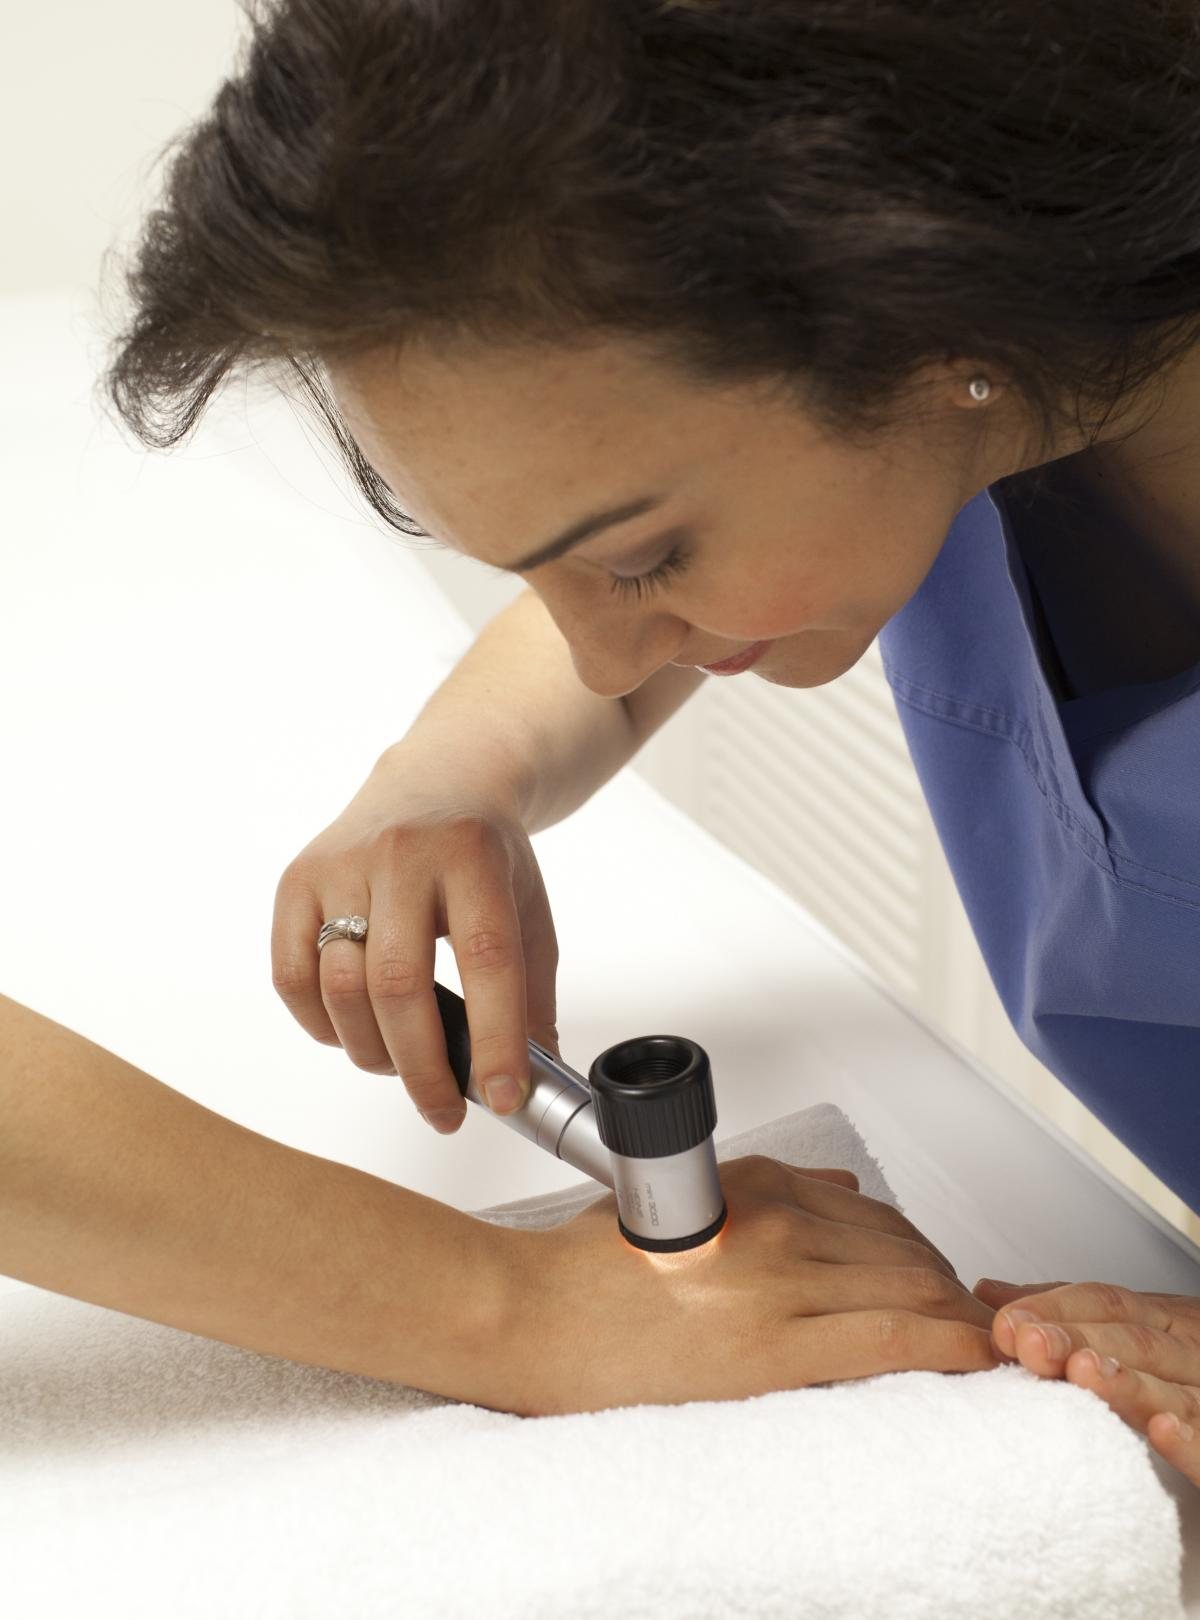 Skin dermoscopy by fully trained Consultant Dermatologists